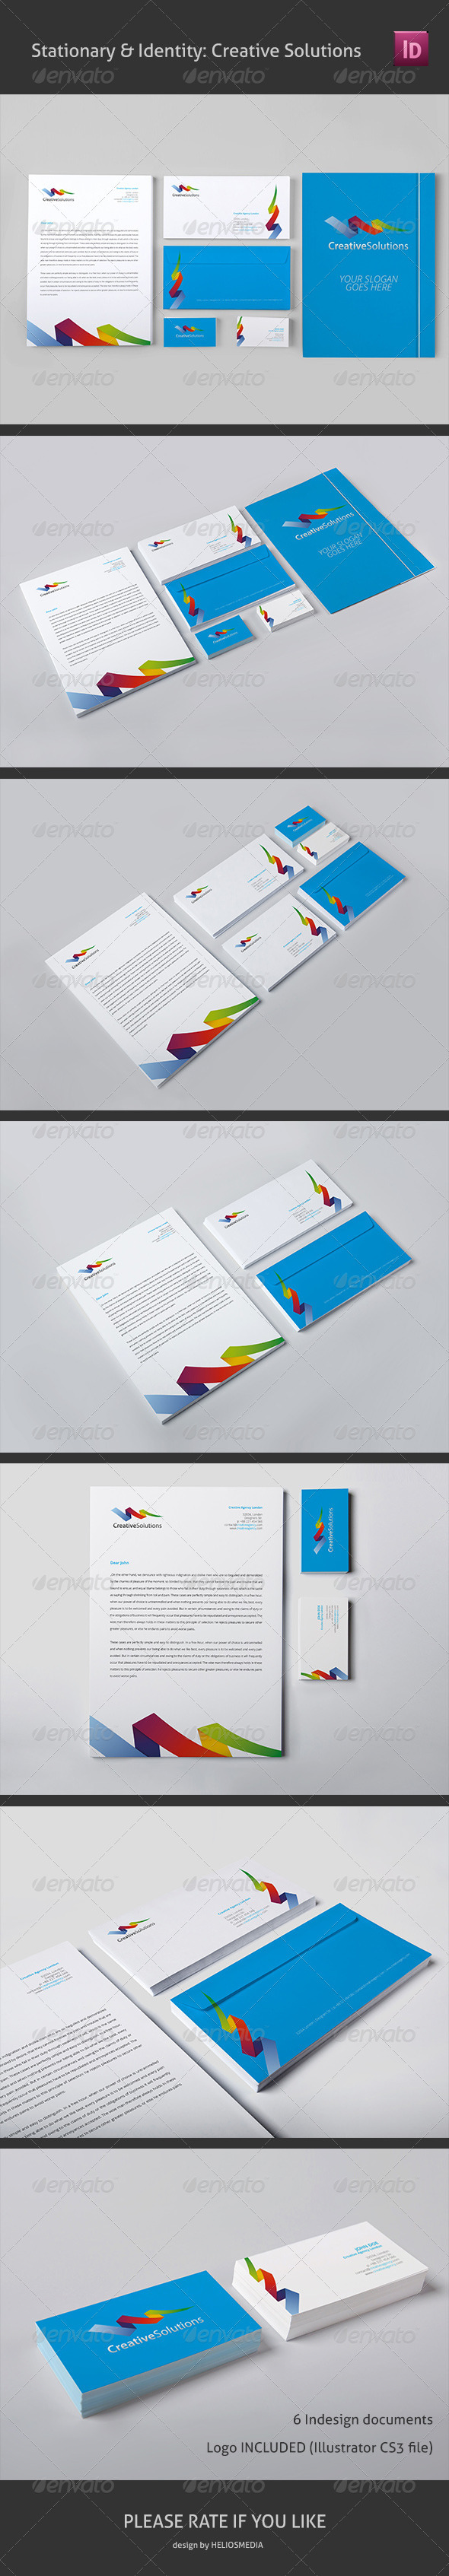 Stationery & Identity Creative Solutions